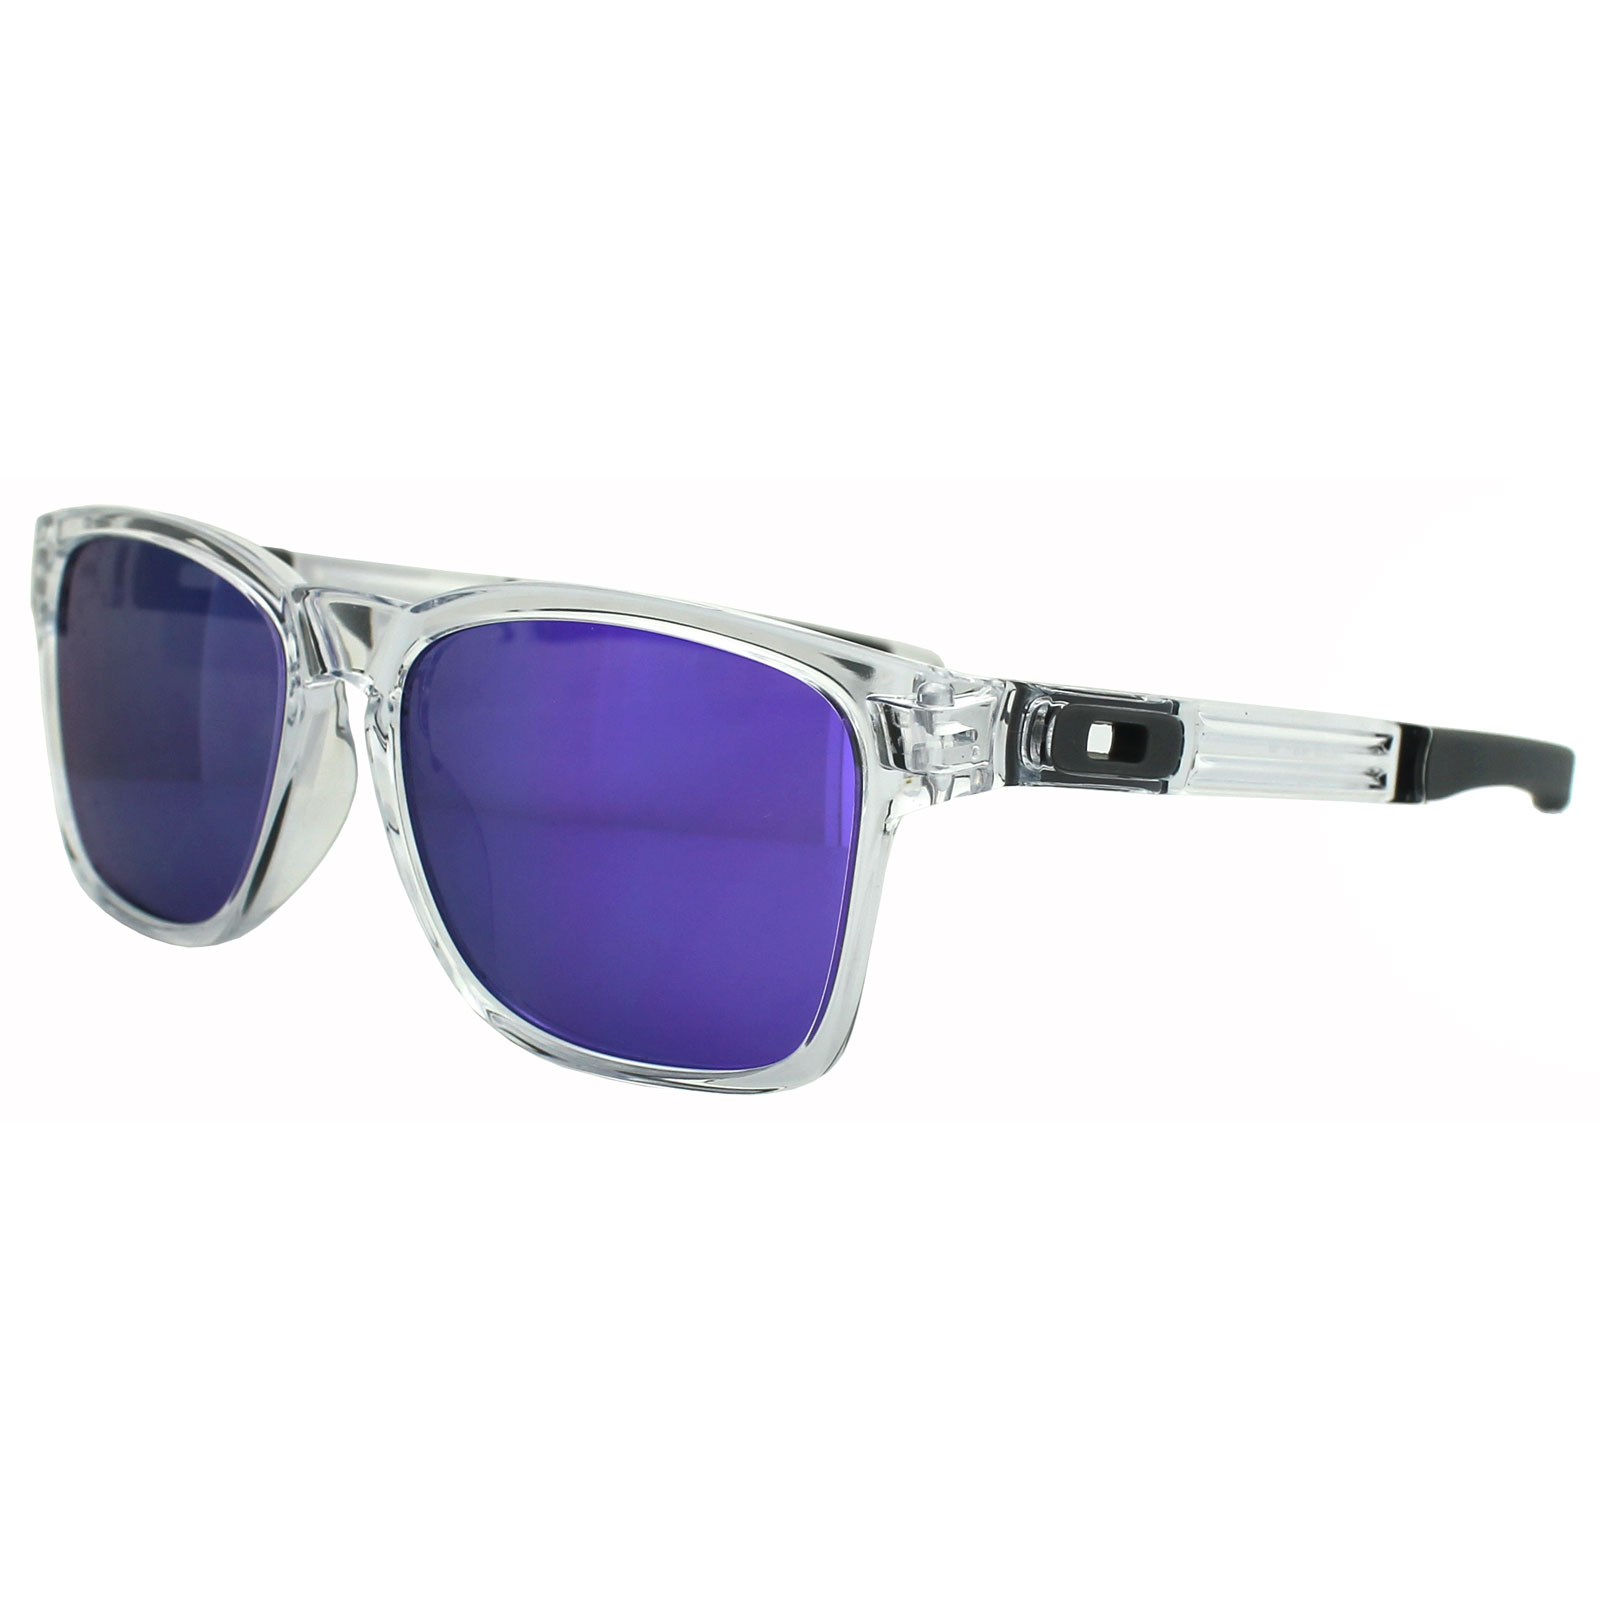 82cbb10f80e Cheap Oakley Catalyst Sunglasses - Discounted Sunglasses